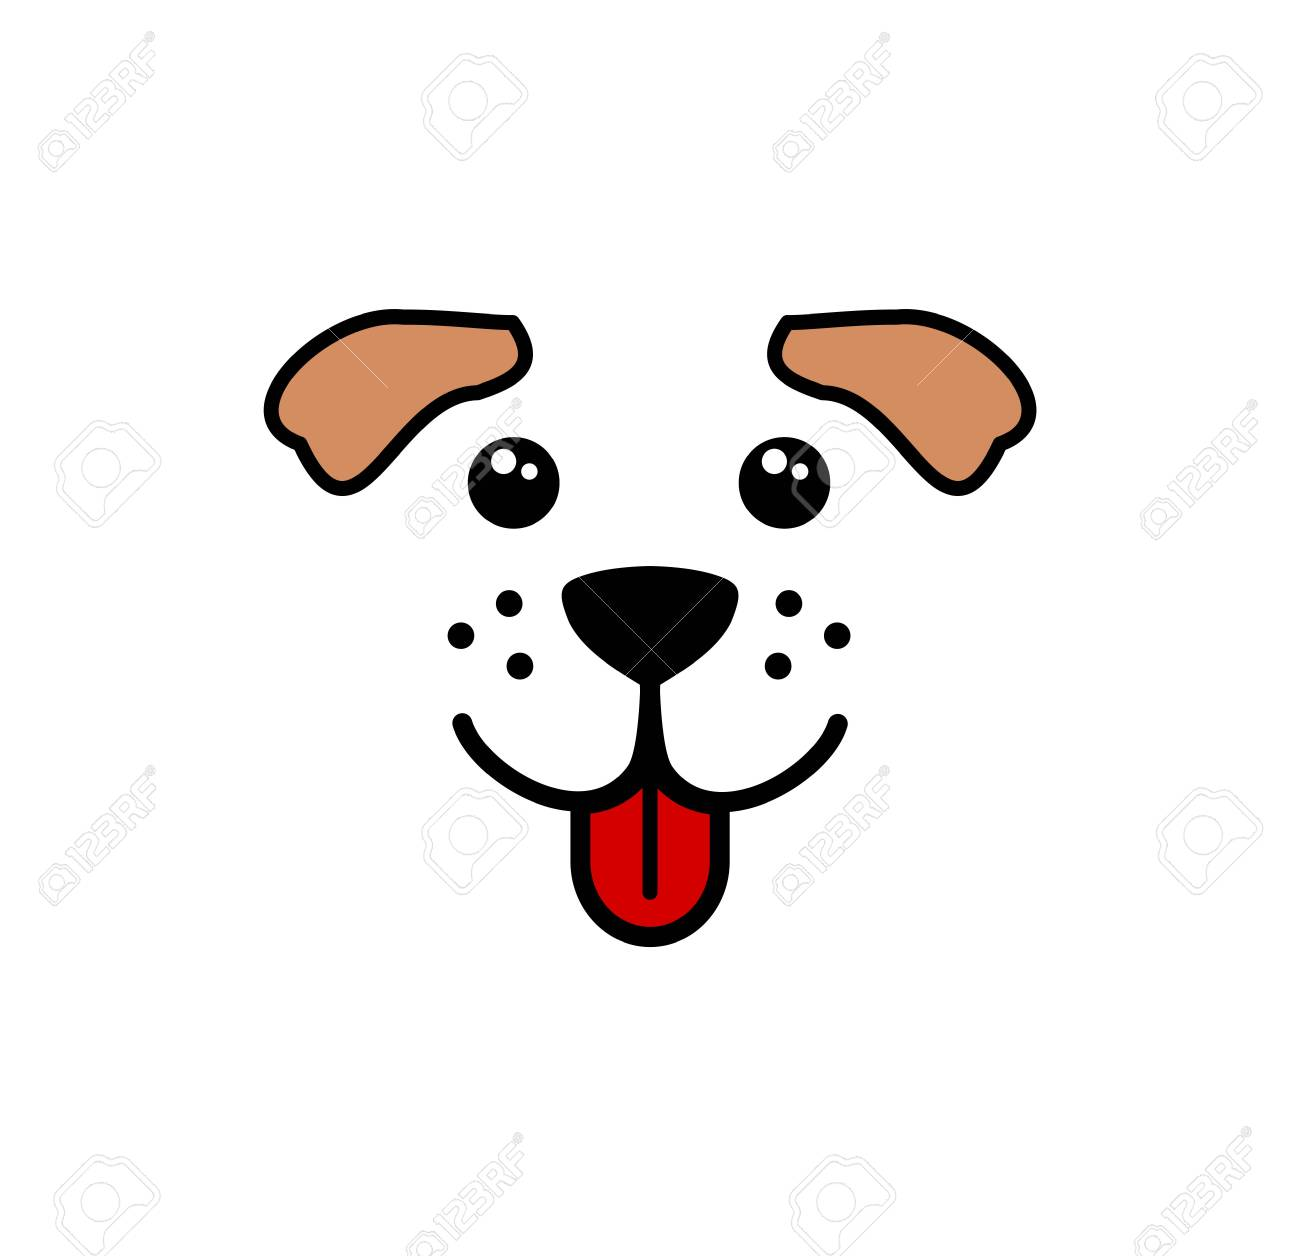 Cute Simple Dog Face Vector Royalty Free Cliparts Vectors And